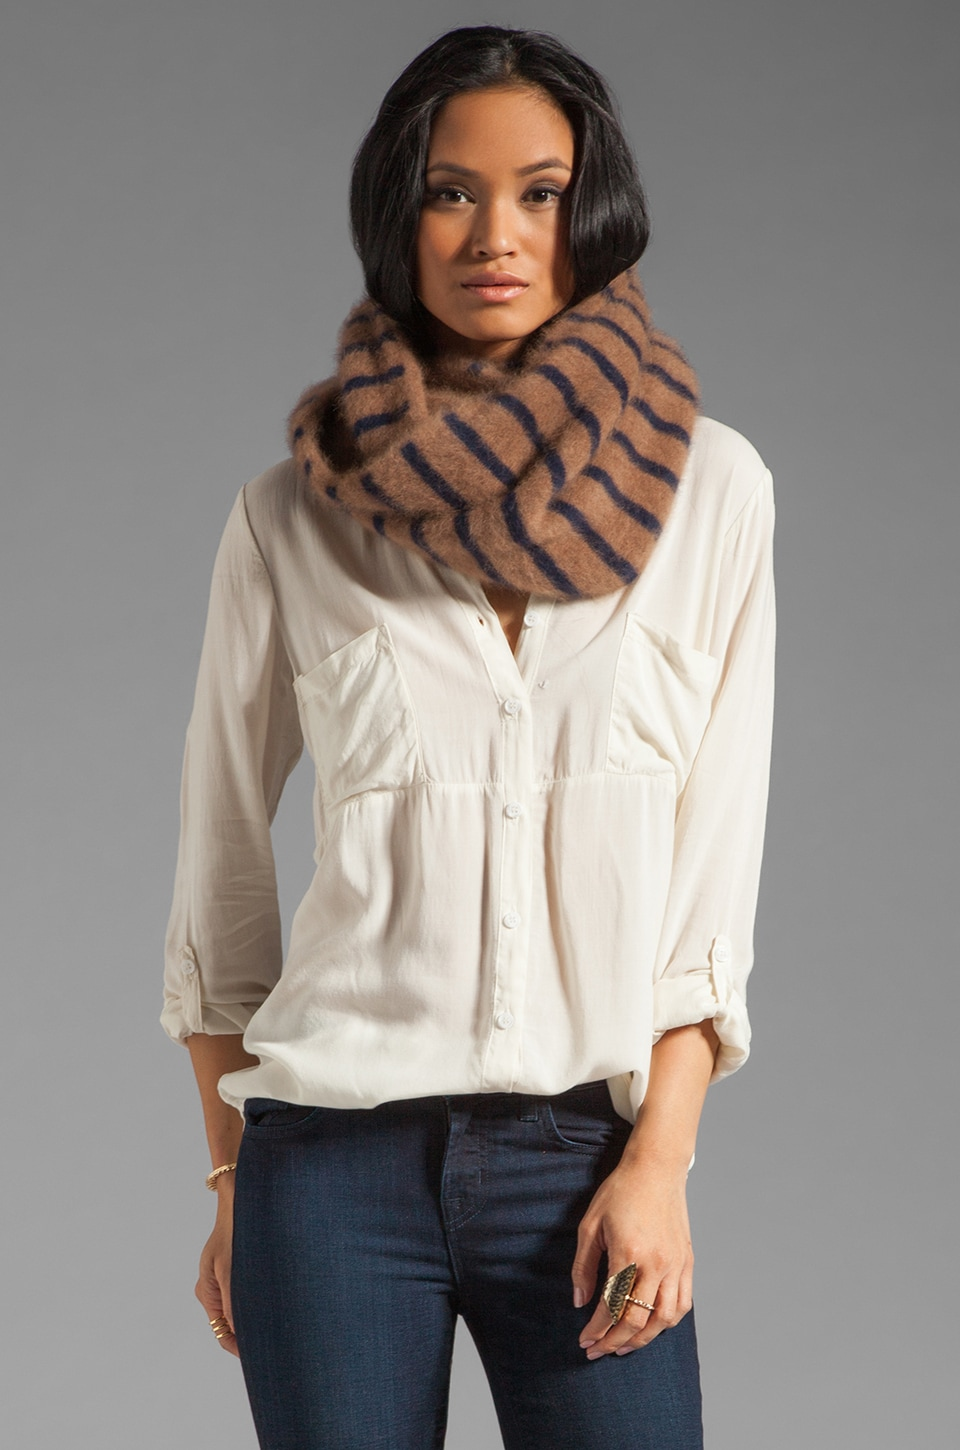 DemyLee Striped Infinity Mohair Scarf in Taupe/Navy